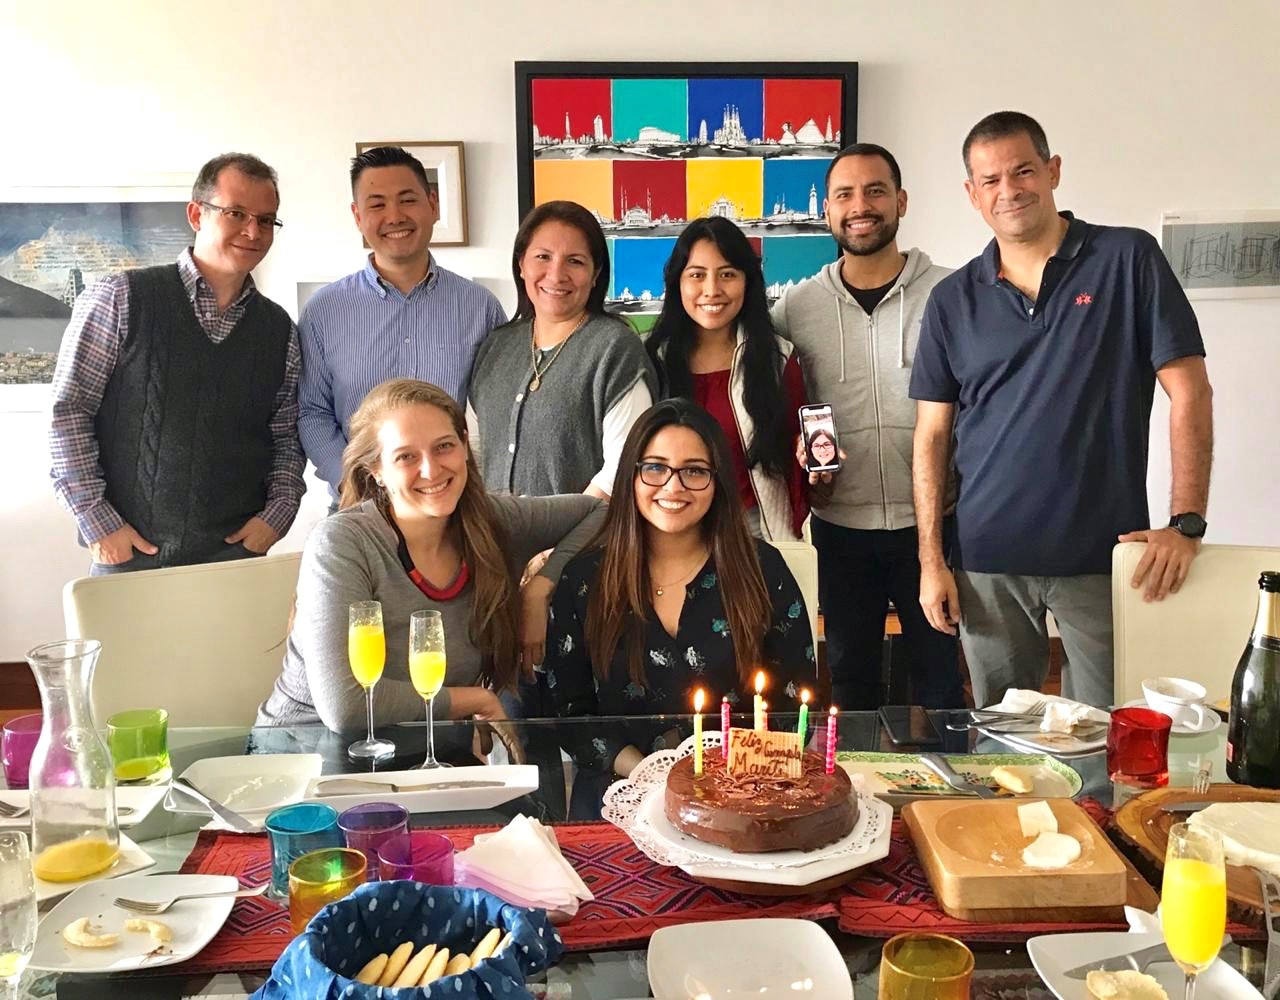 (posted) 2018.10.30 PIP Peru celebrating Marites birthday - Patrick, Daniel, Medalit, Patricia, Angie (on phone), Daniel, Olazhir, Ines and MariaTeresa (1)